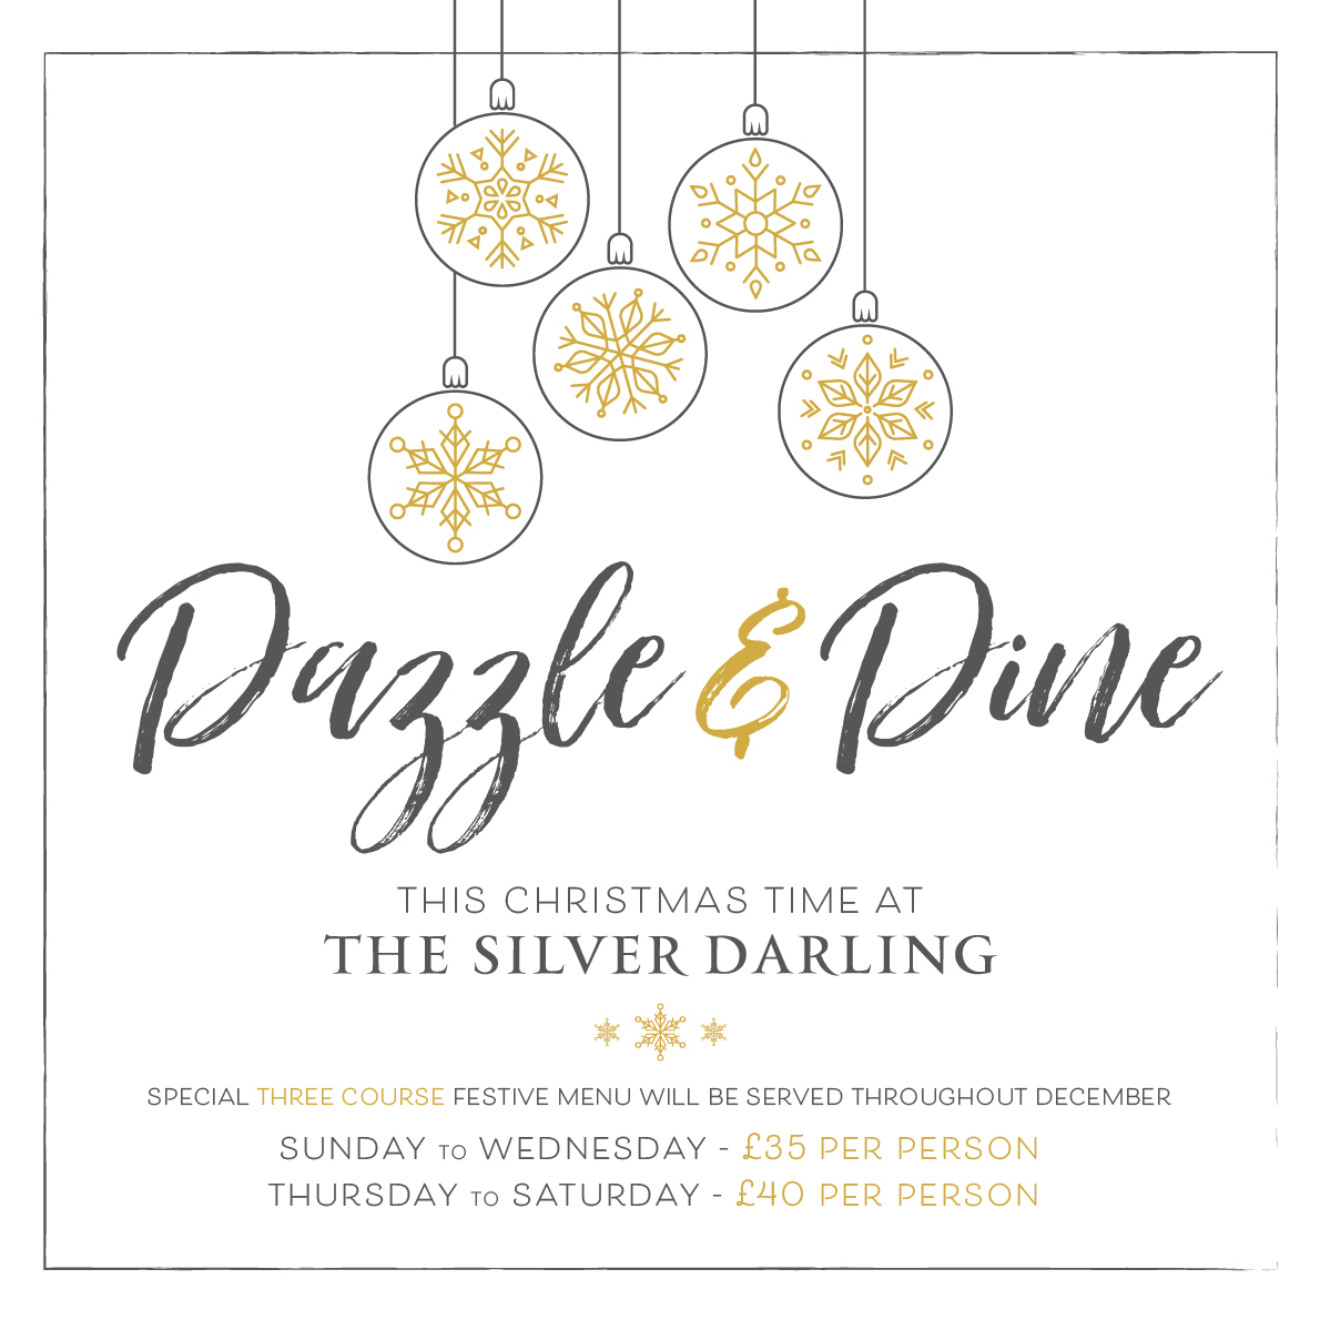 Dazzle & Dine this Christmas time at The Silver Darling...